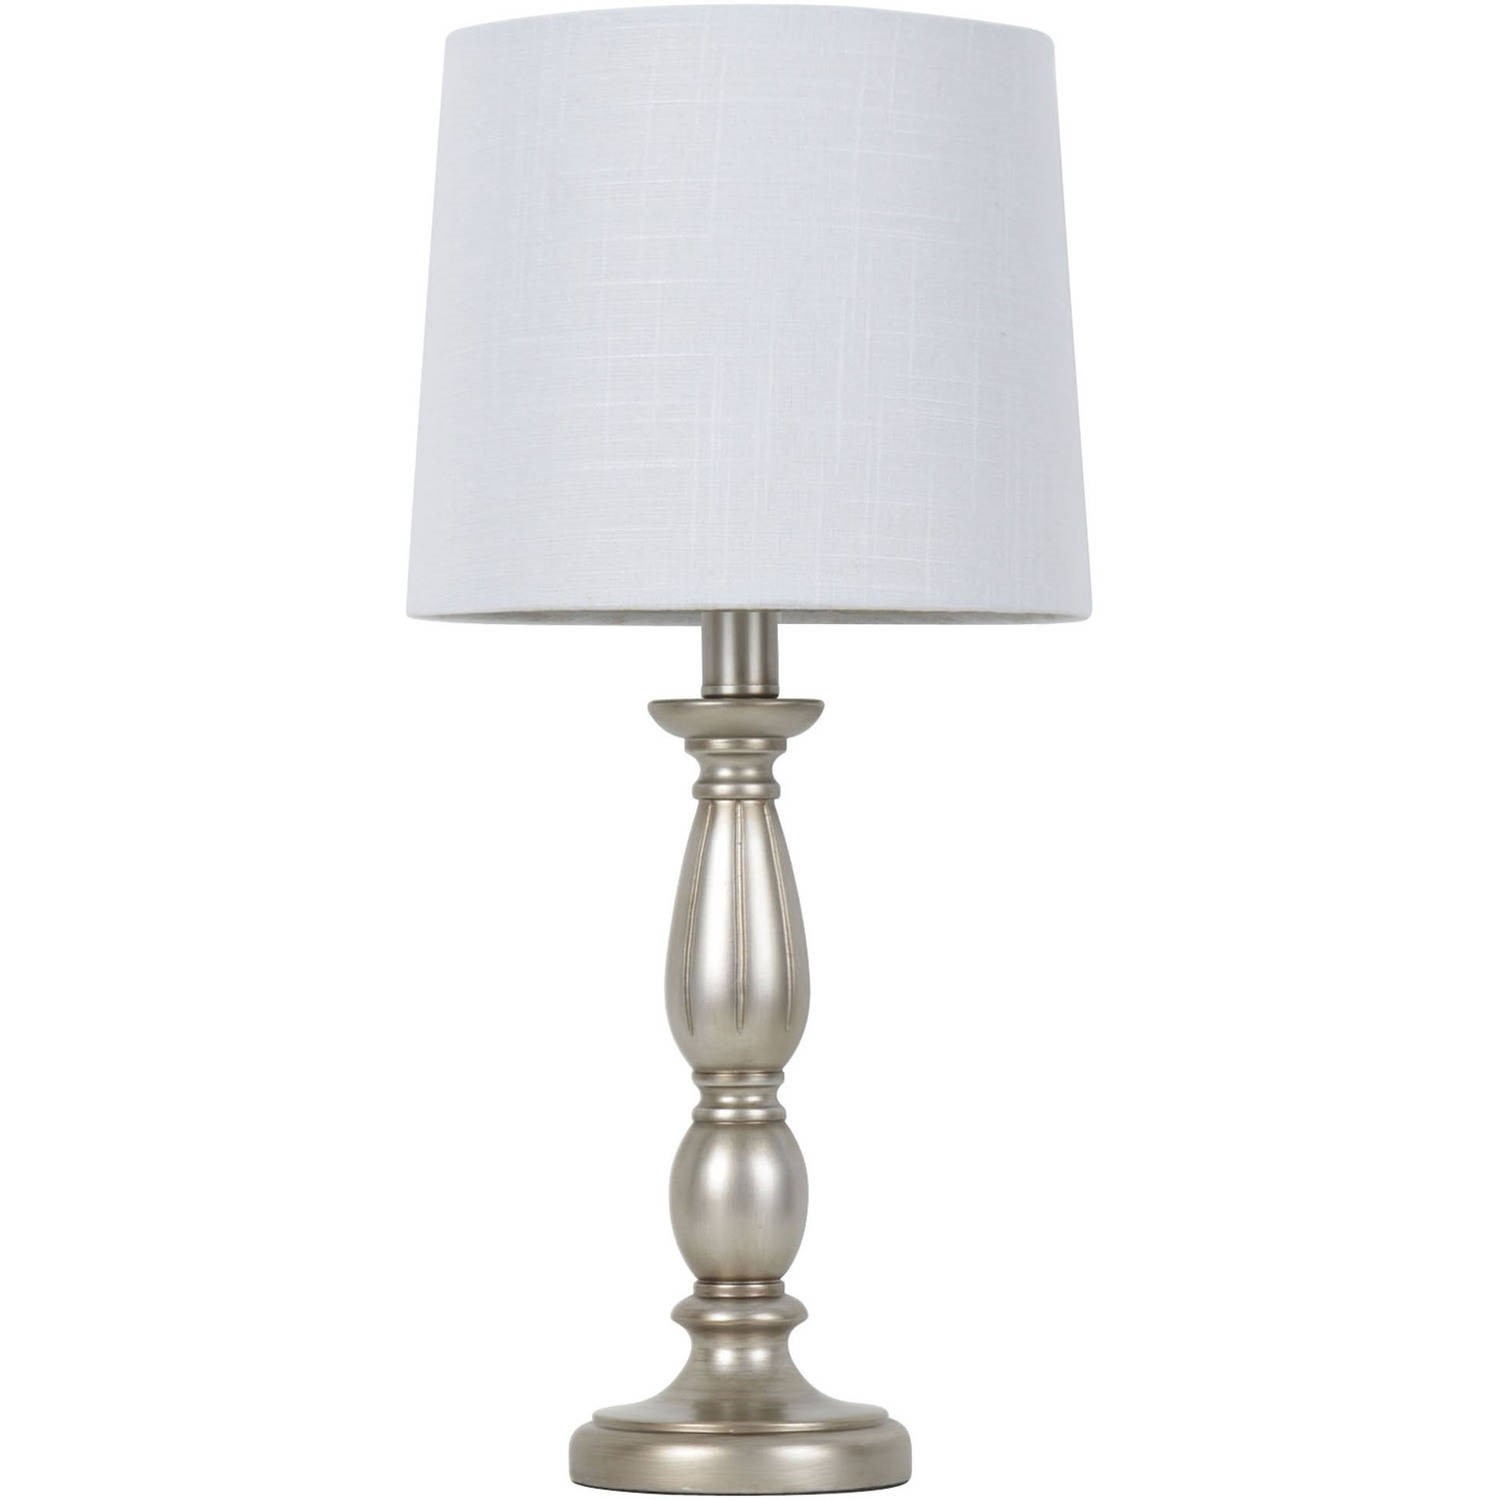 Mainstays Antique Silver Turned Resin Table Lamp by JIMCO LAMP CO.